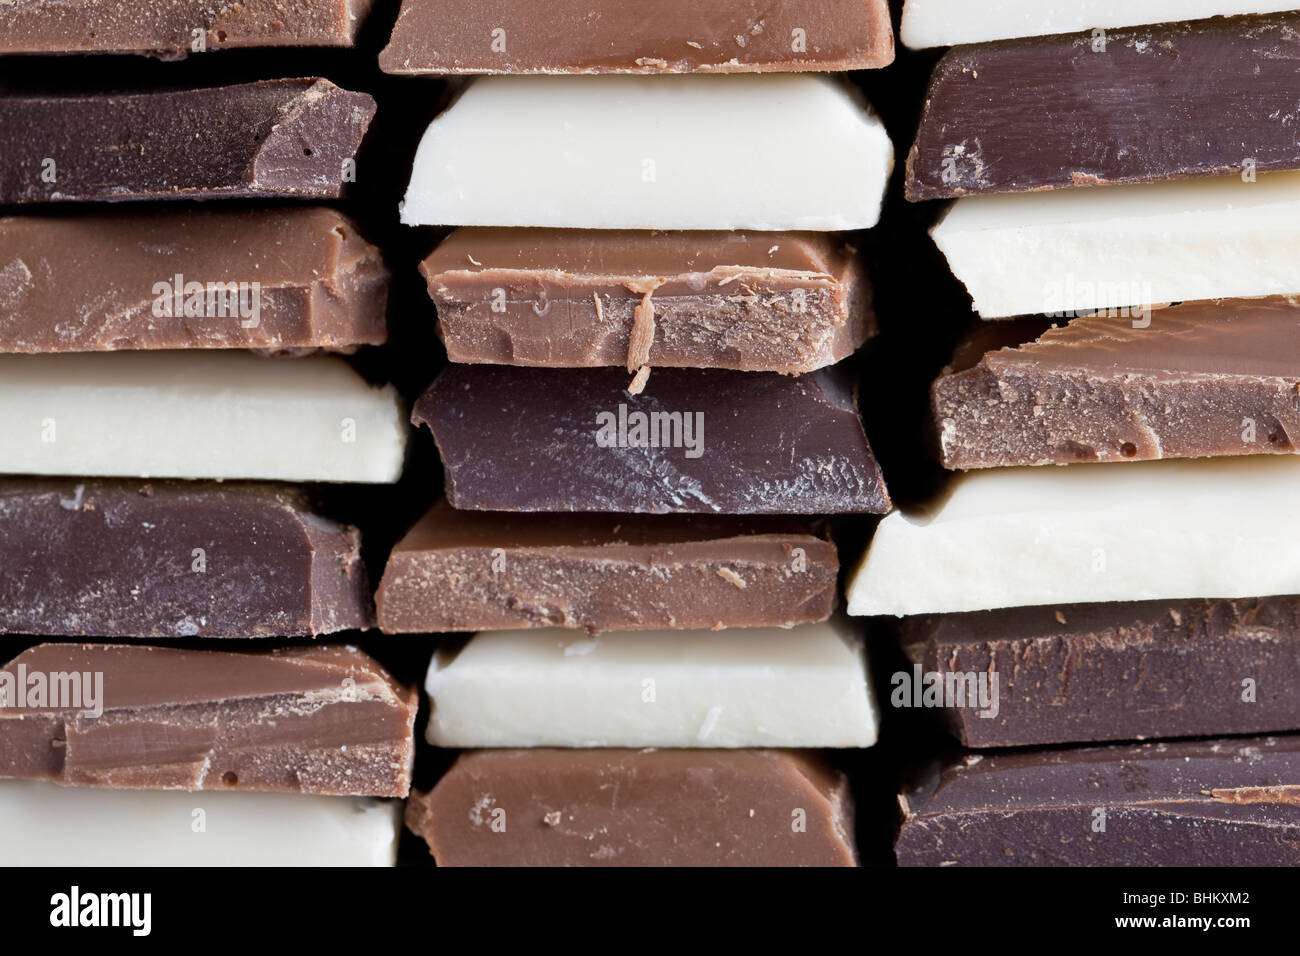 Many flavors of chocolate stacked up Stock Photo